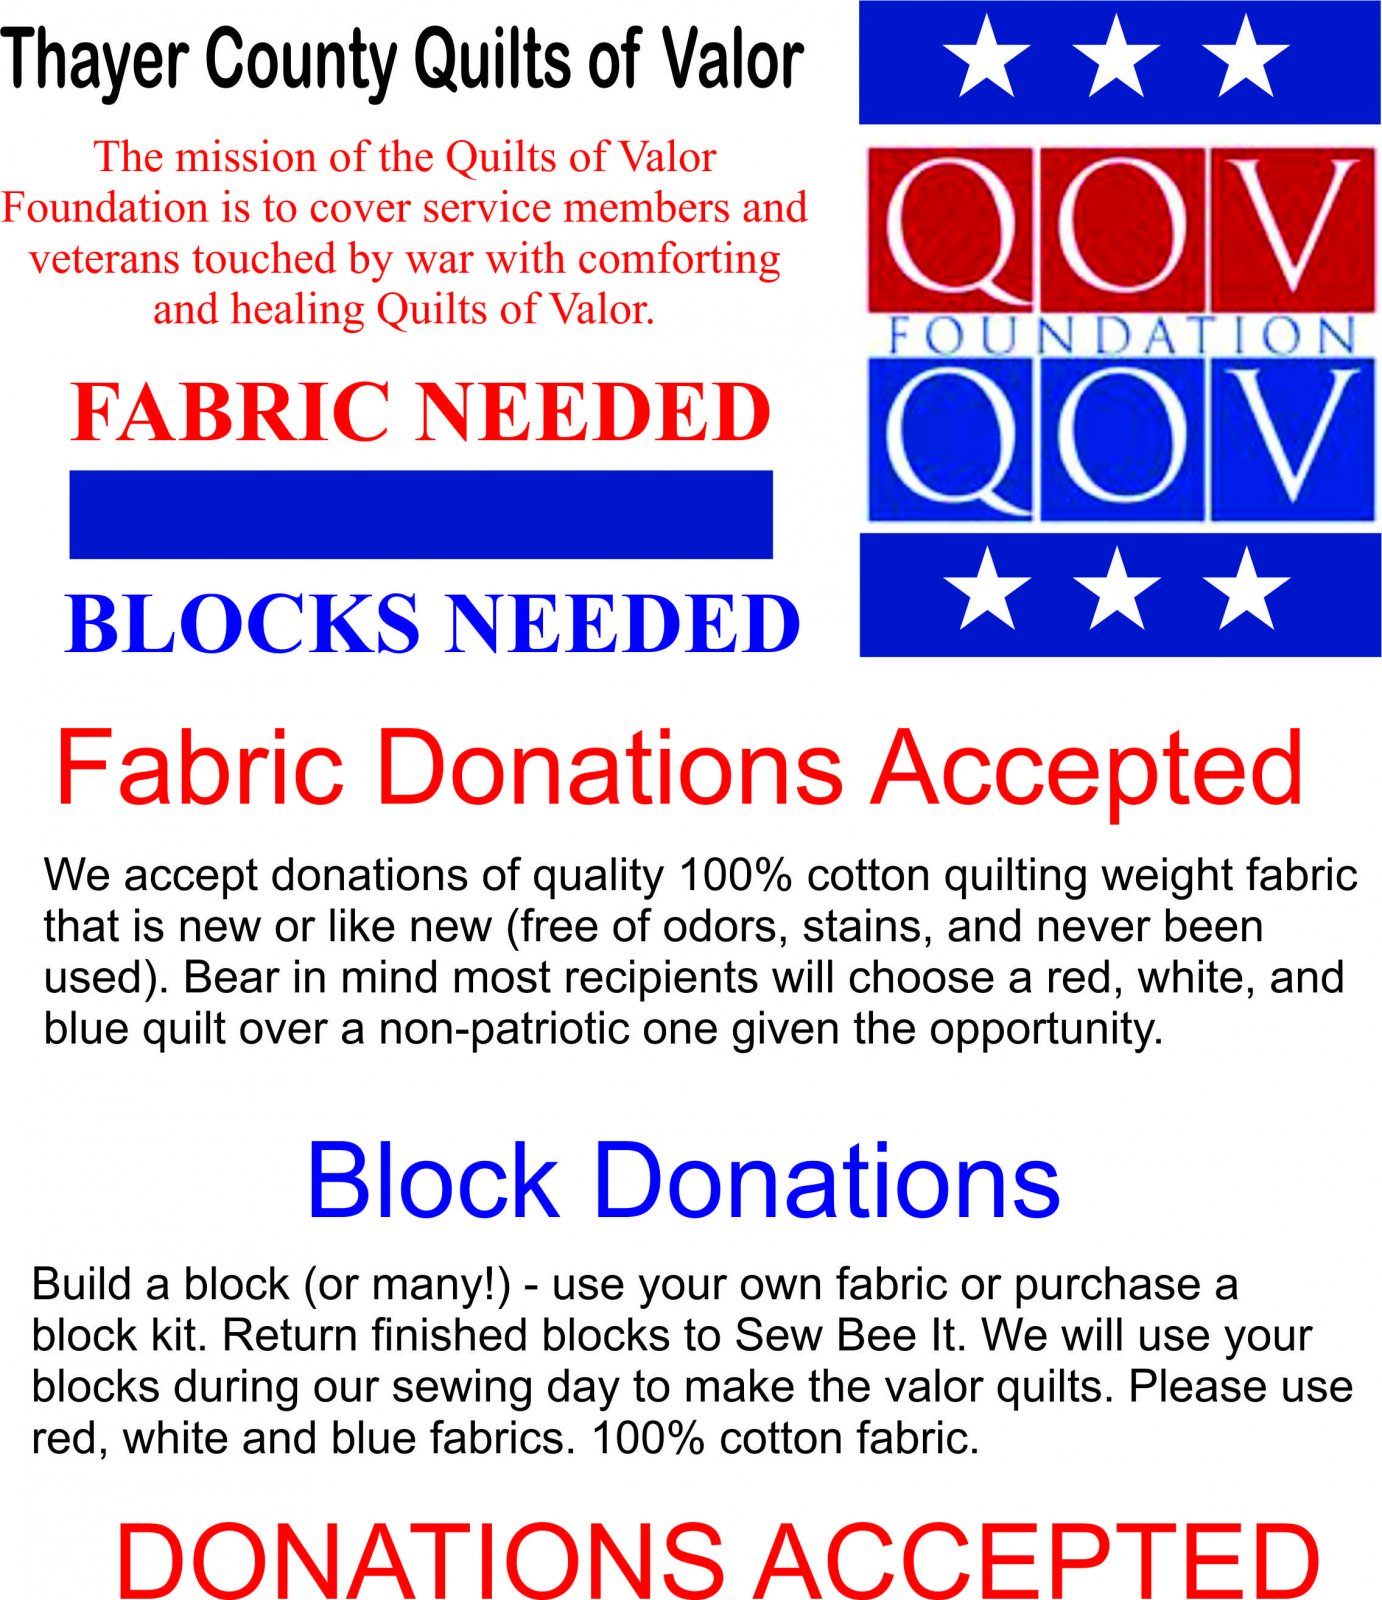 Quilts of Valor Donations Accepted